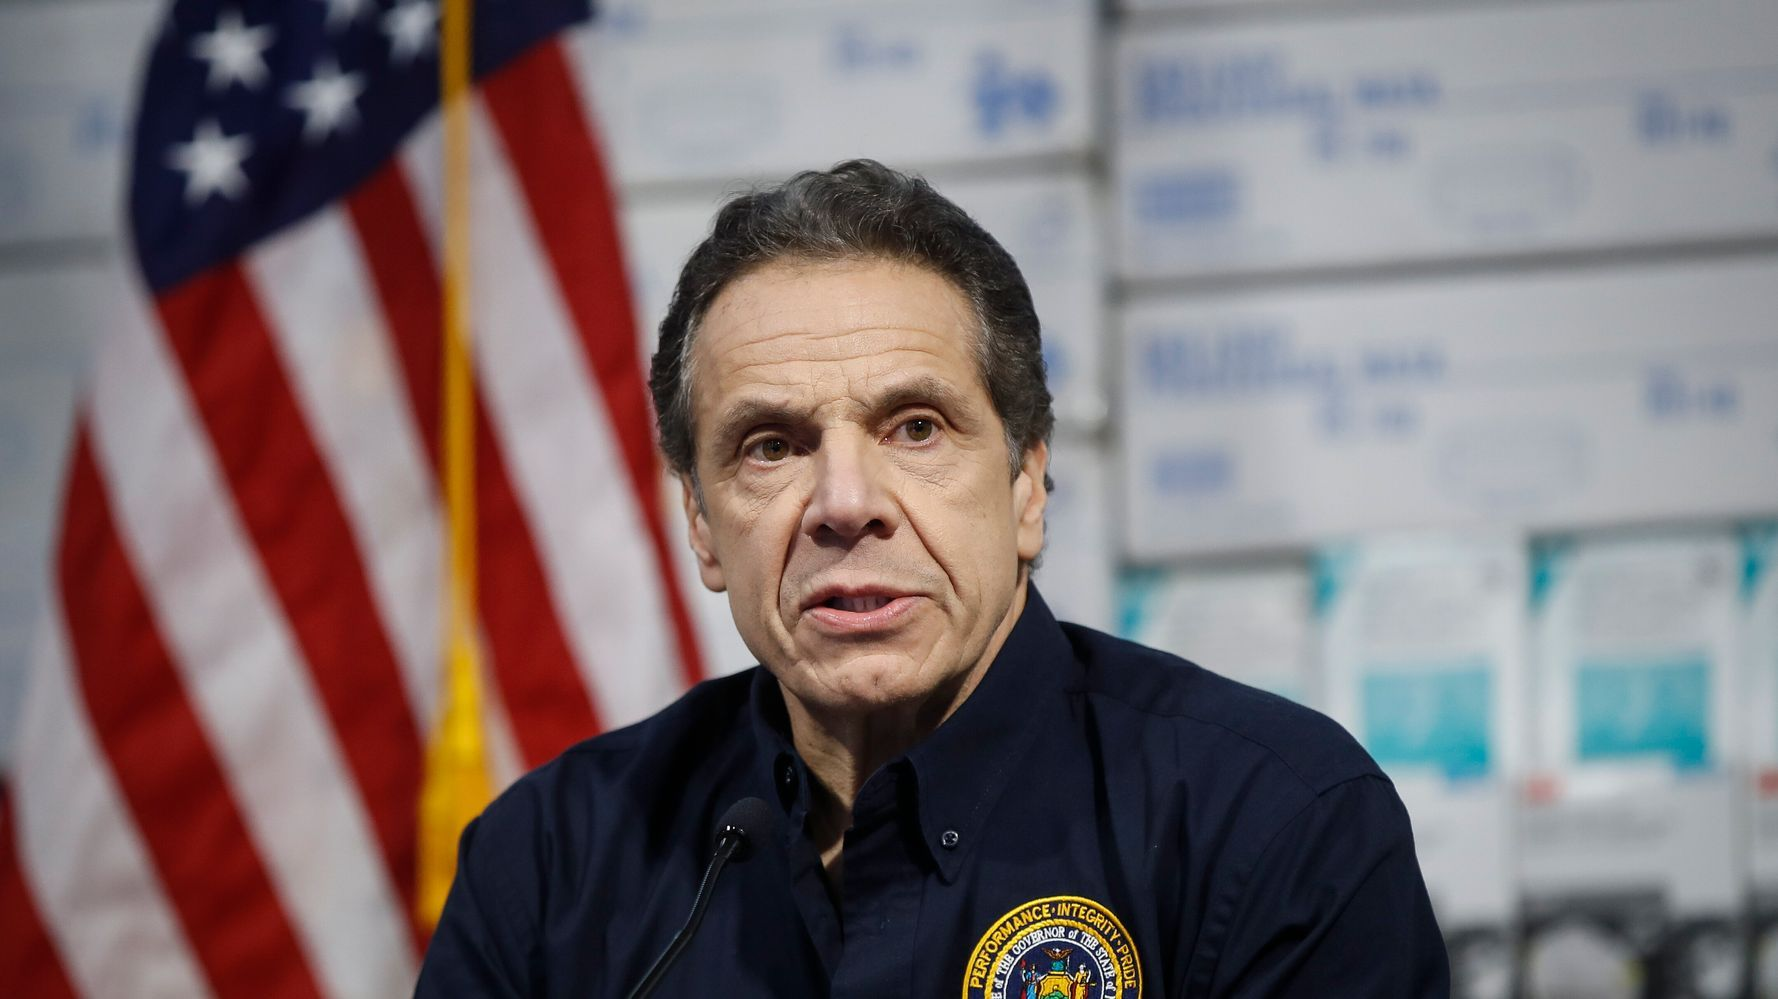 Trump Rejects New York S Plea For Ventilators I Don T Believe You Need That Many In 2020 Andrew Cuomo Governor York